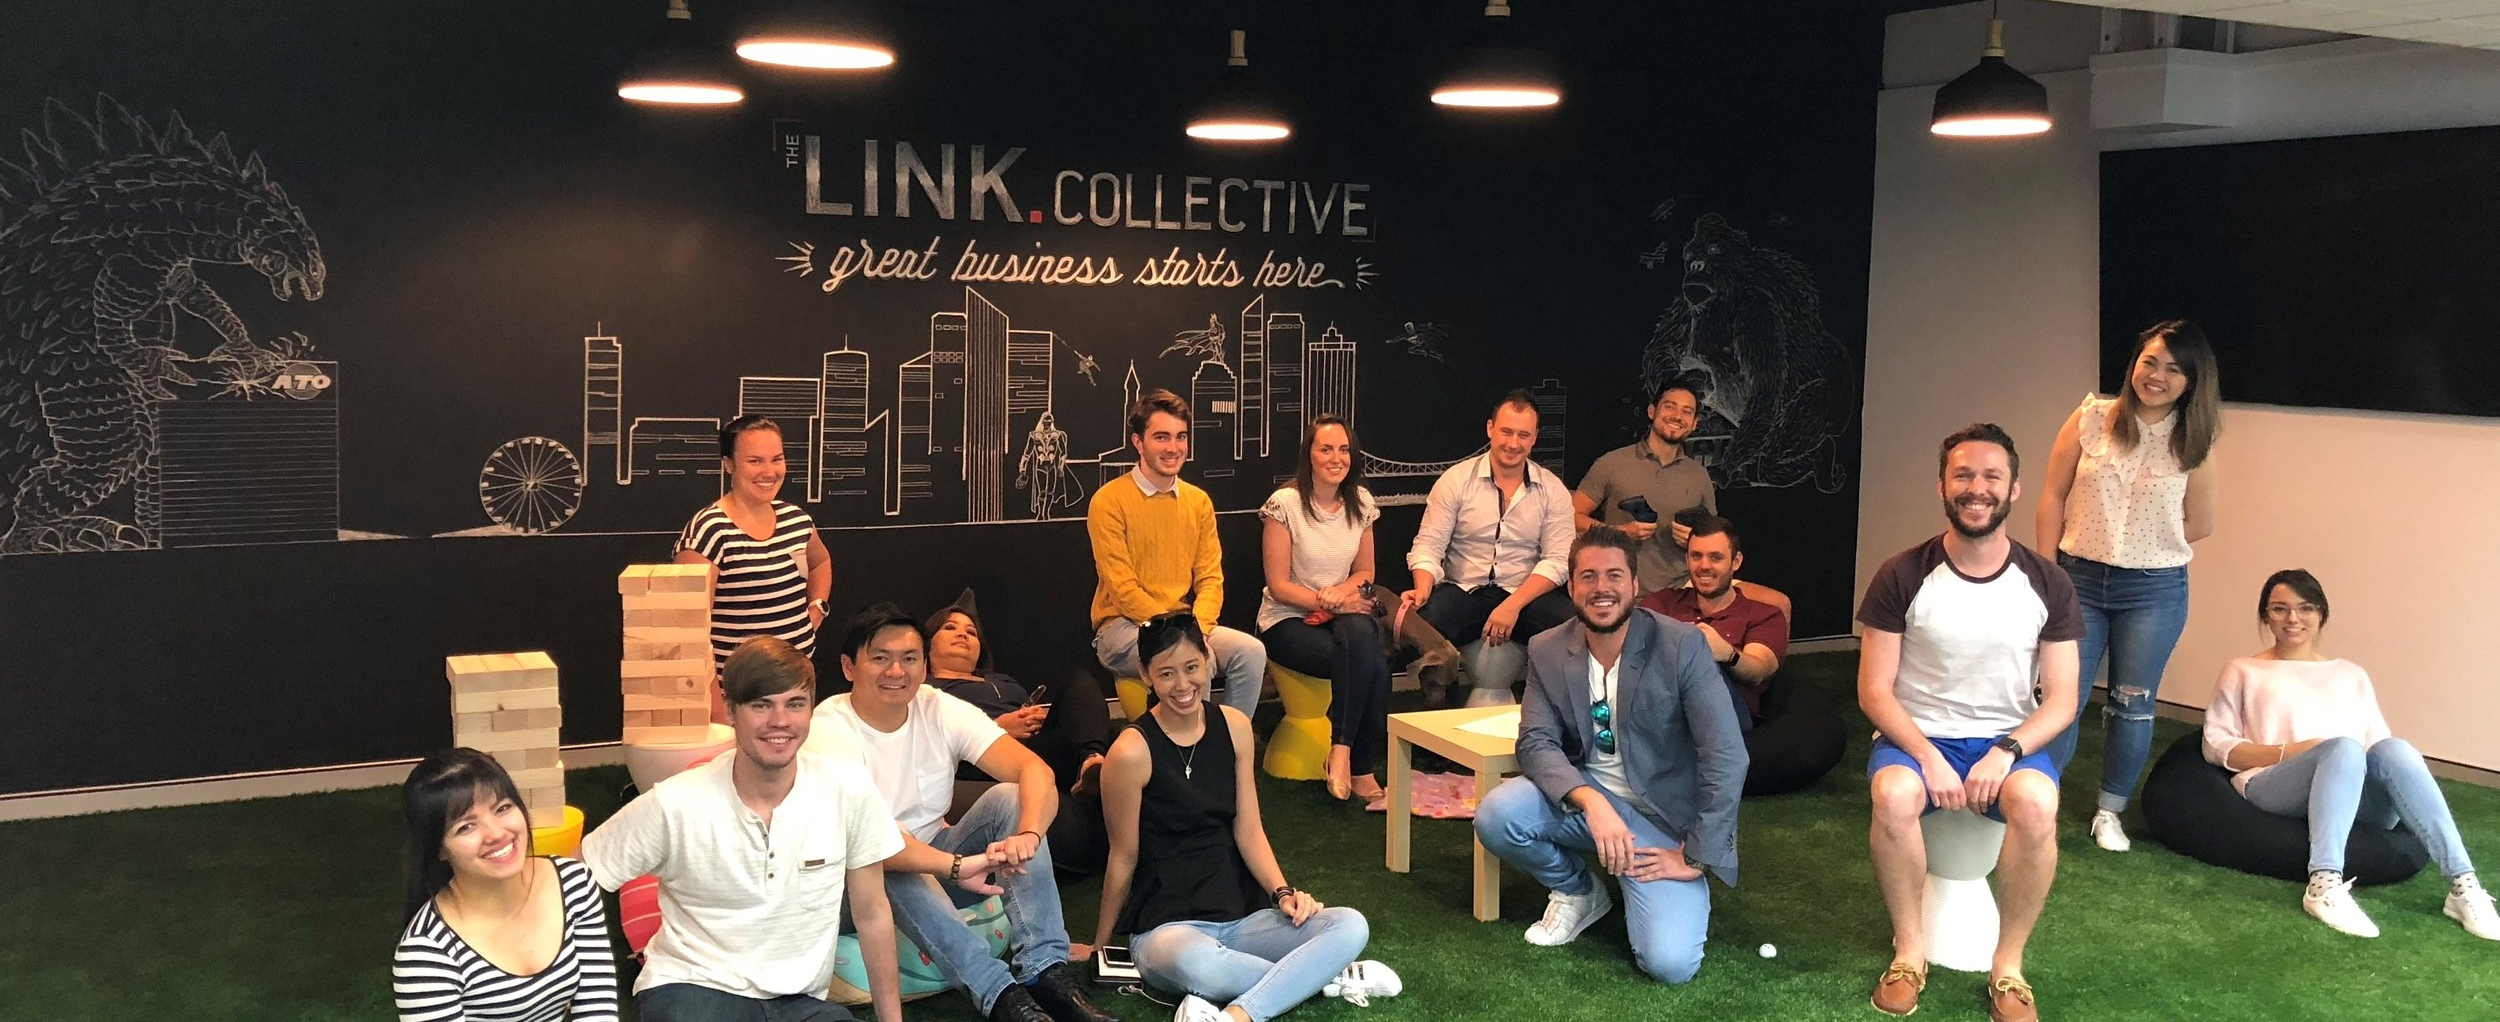 link collective team shot